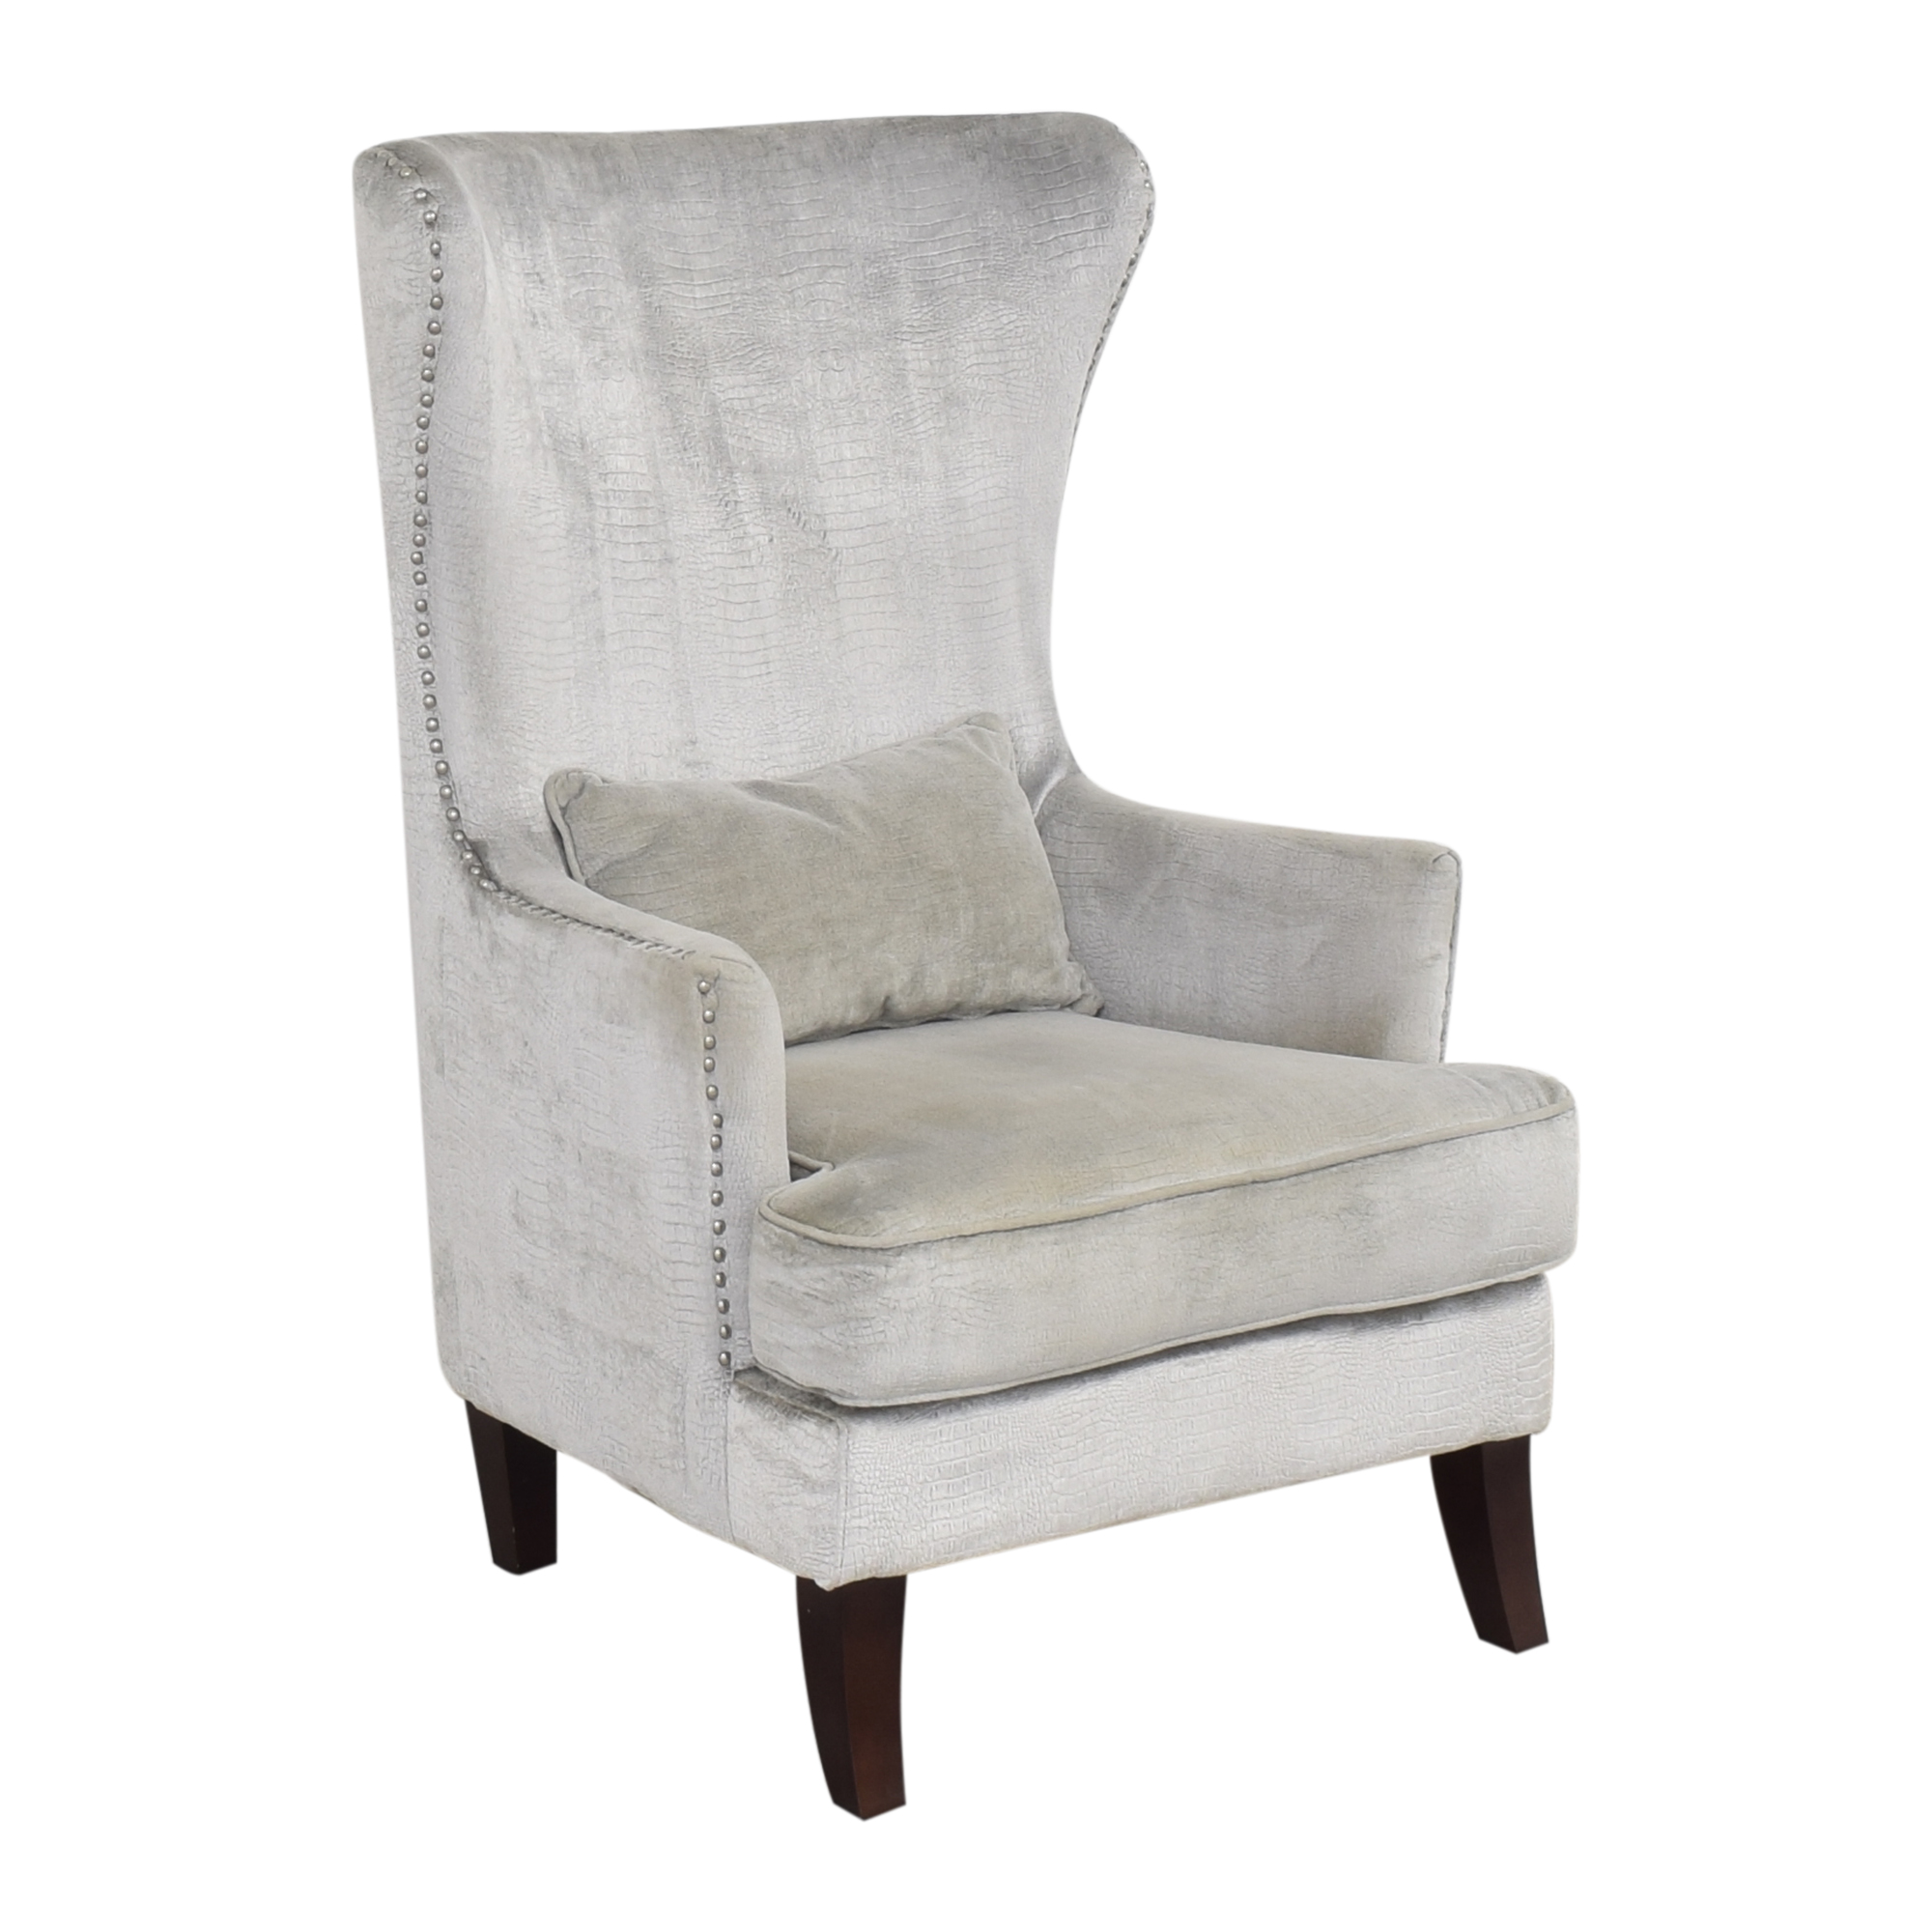 shop Lamps Plus Street Aston Wingback Chair Lamps Plus Chairs